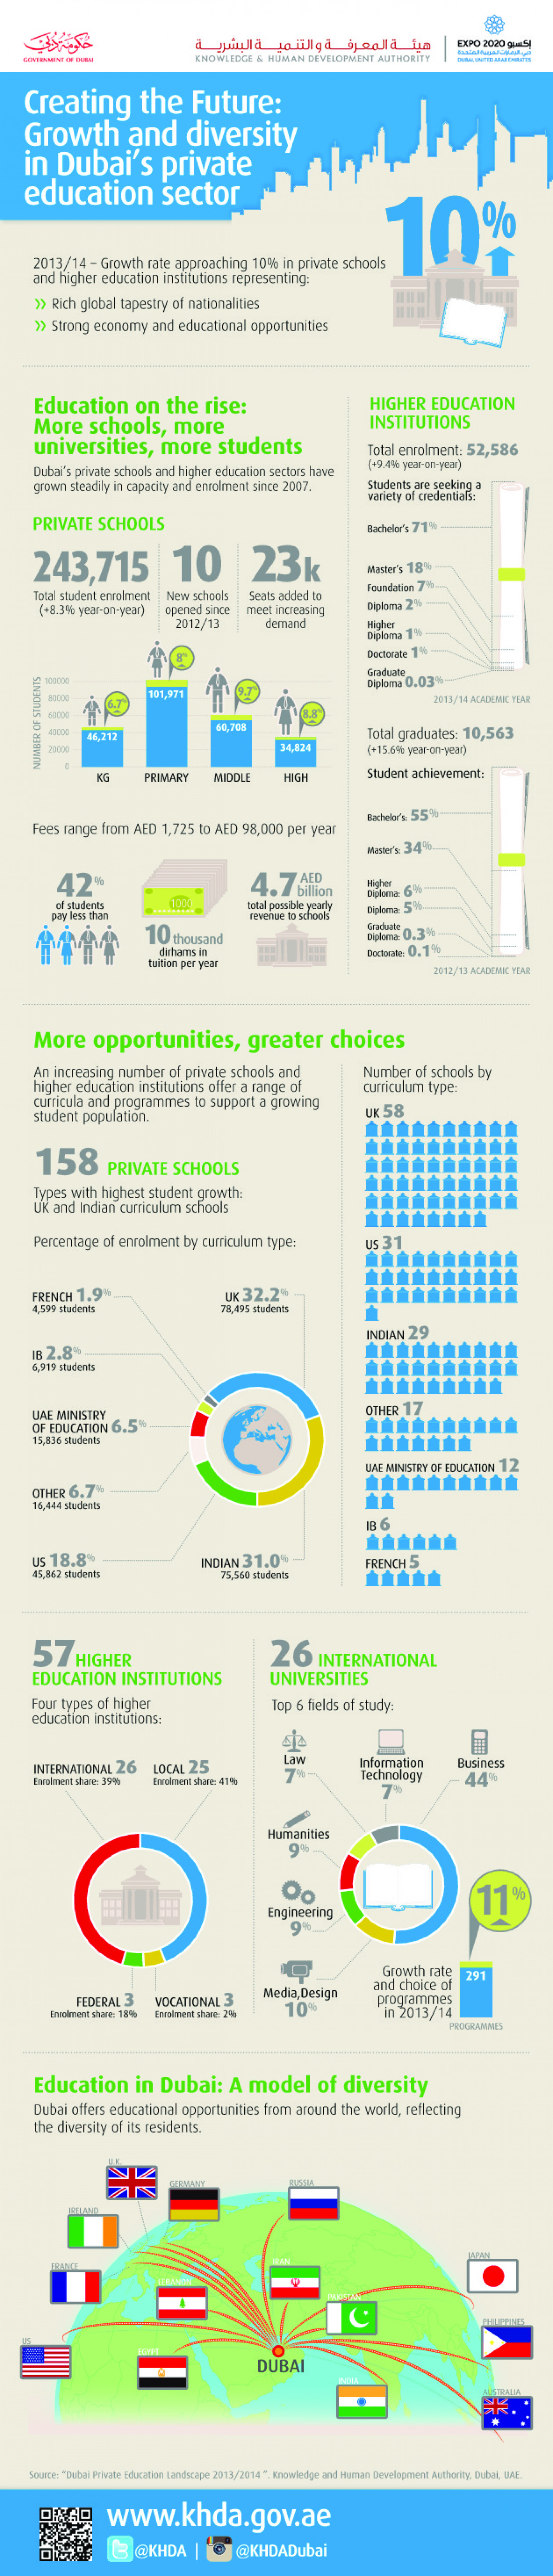 Creating the Future: Growth and diversity in Dubai's private education sector Infographic